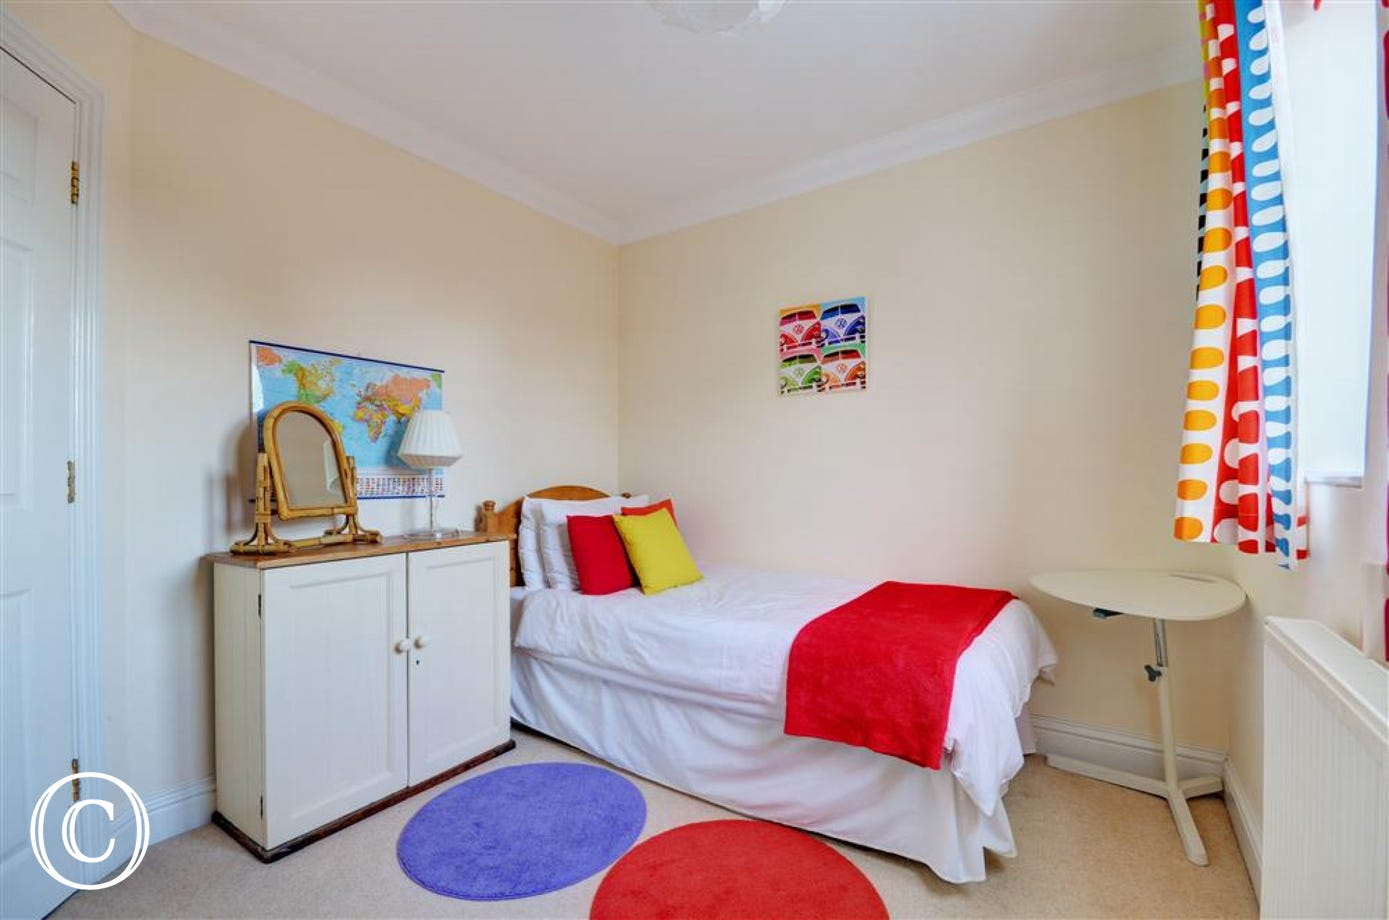 View of the single bedroom, with cupboards and cheery bright cushions and curtains.